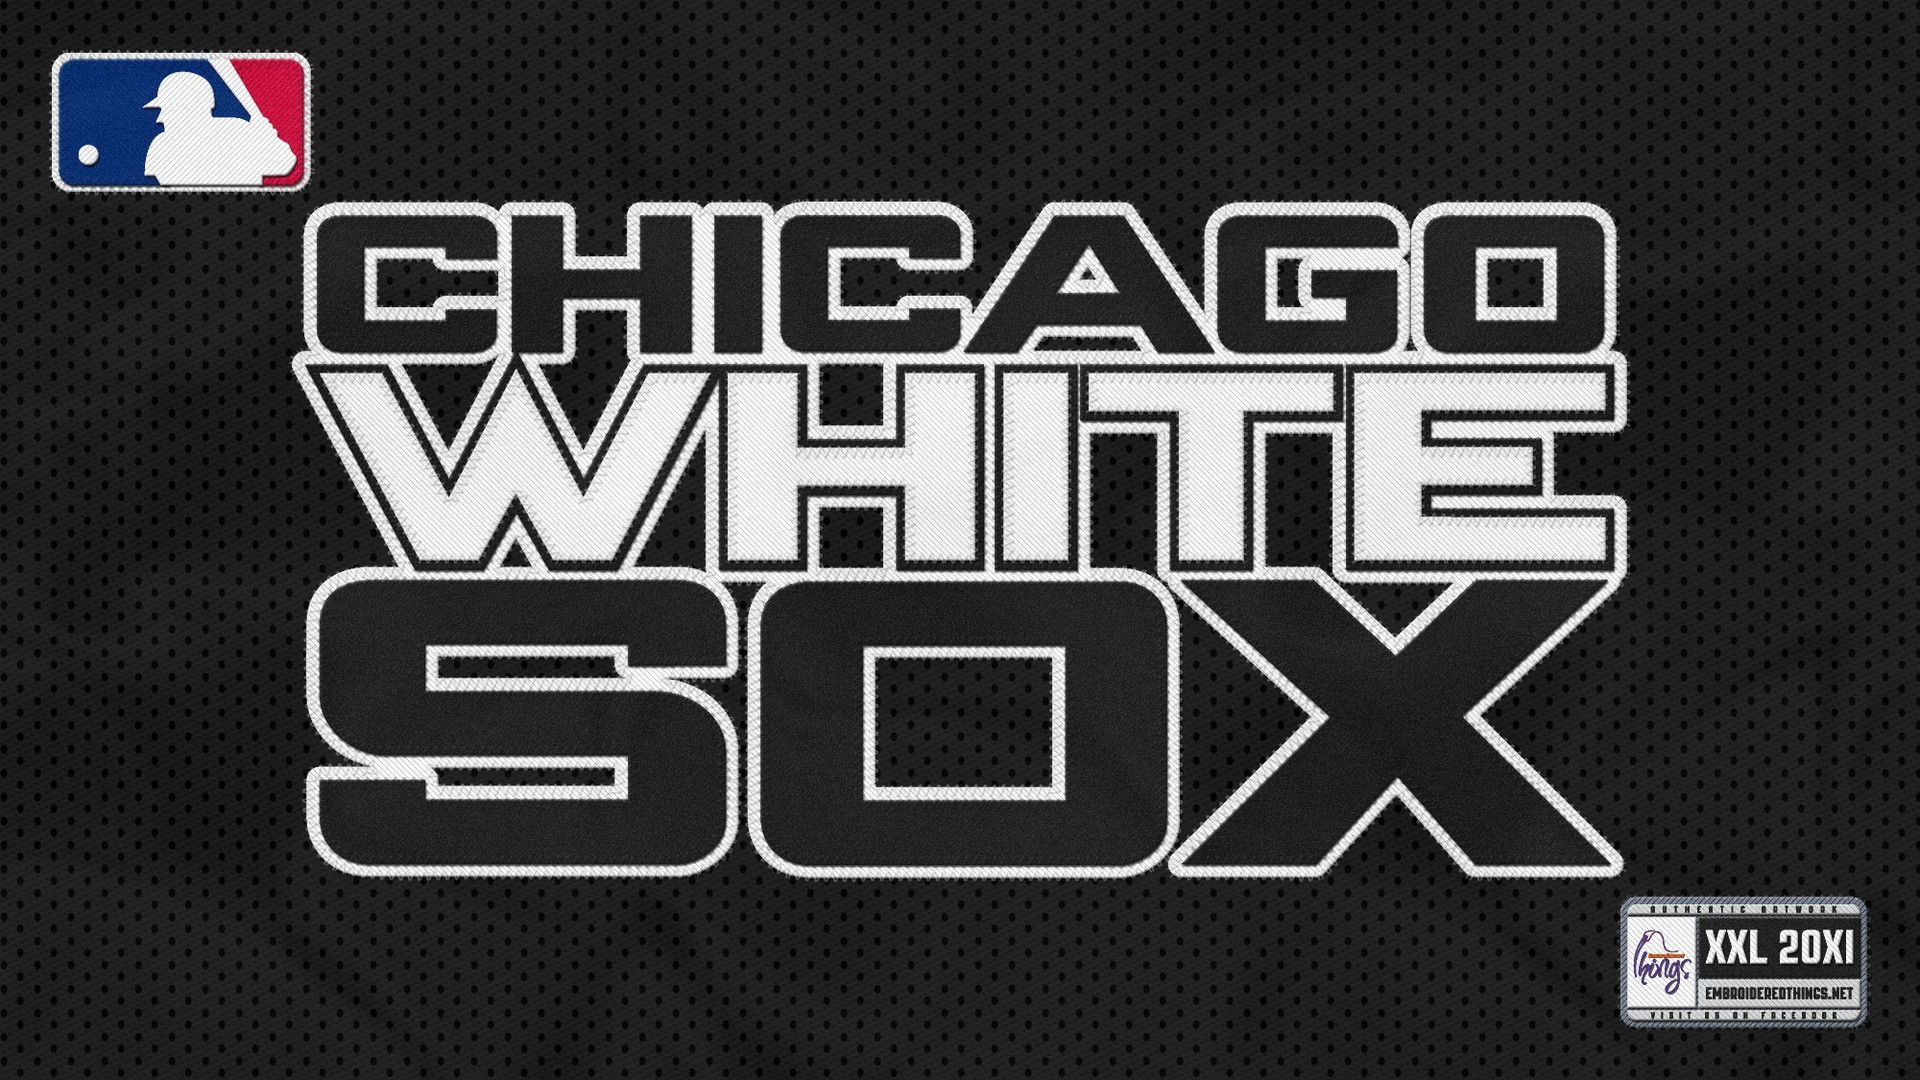 Yankees Wallpaper Iphone X Chicago White Sox Hd Wallpaper Background Image